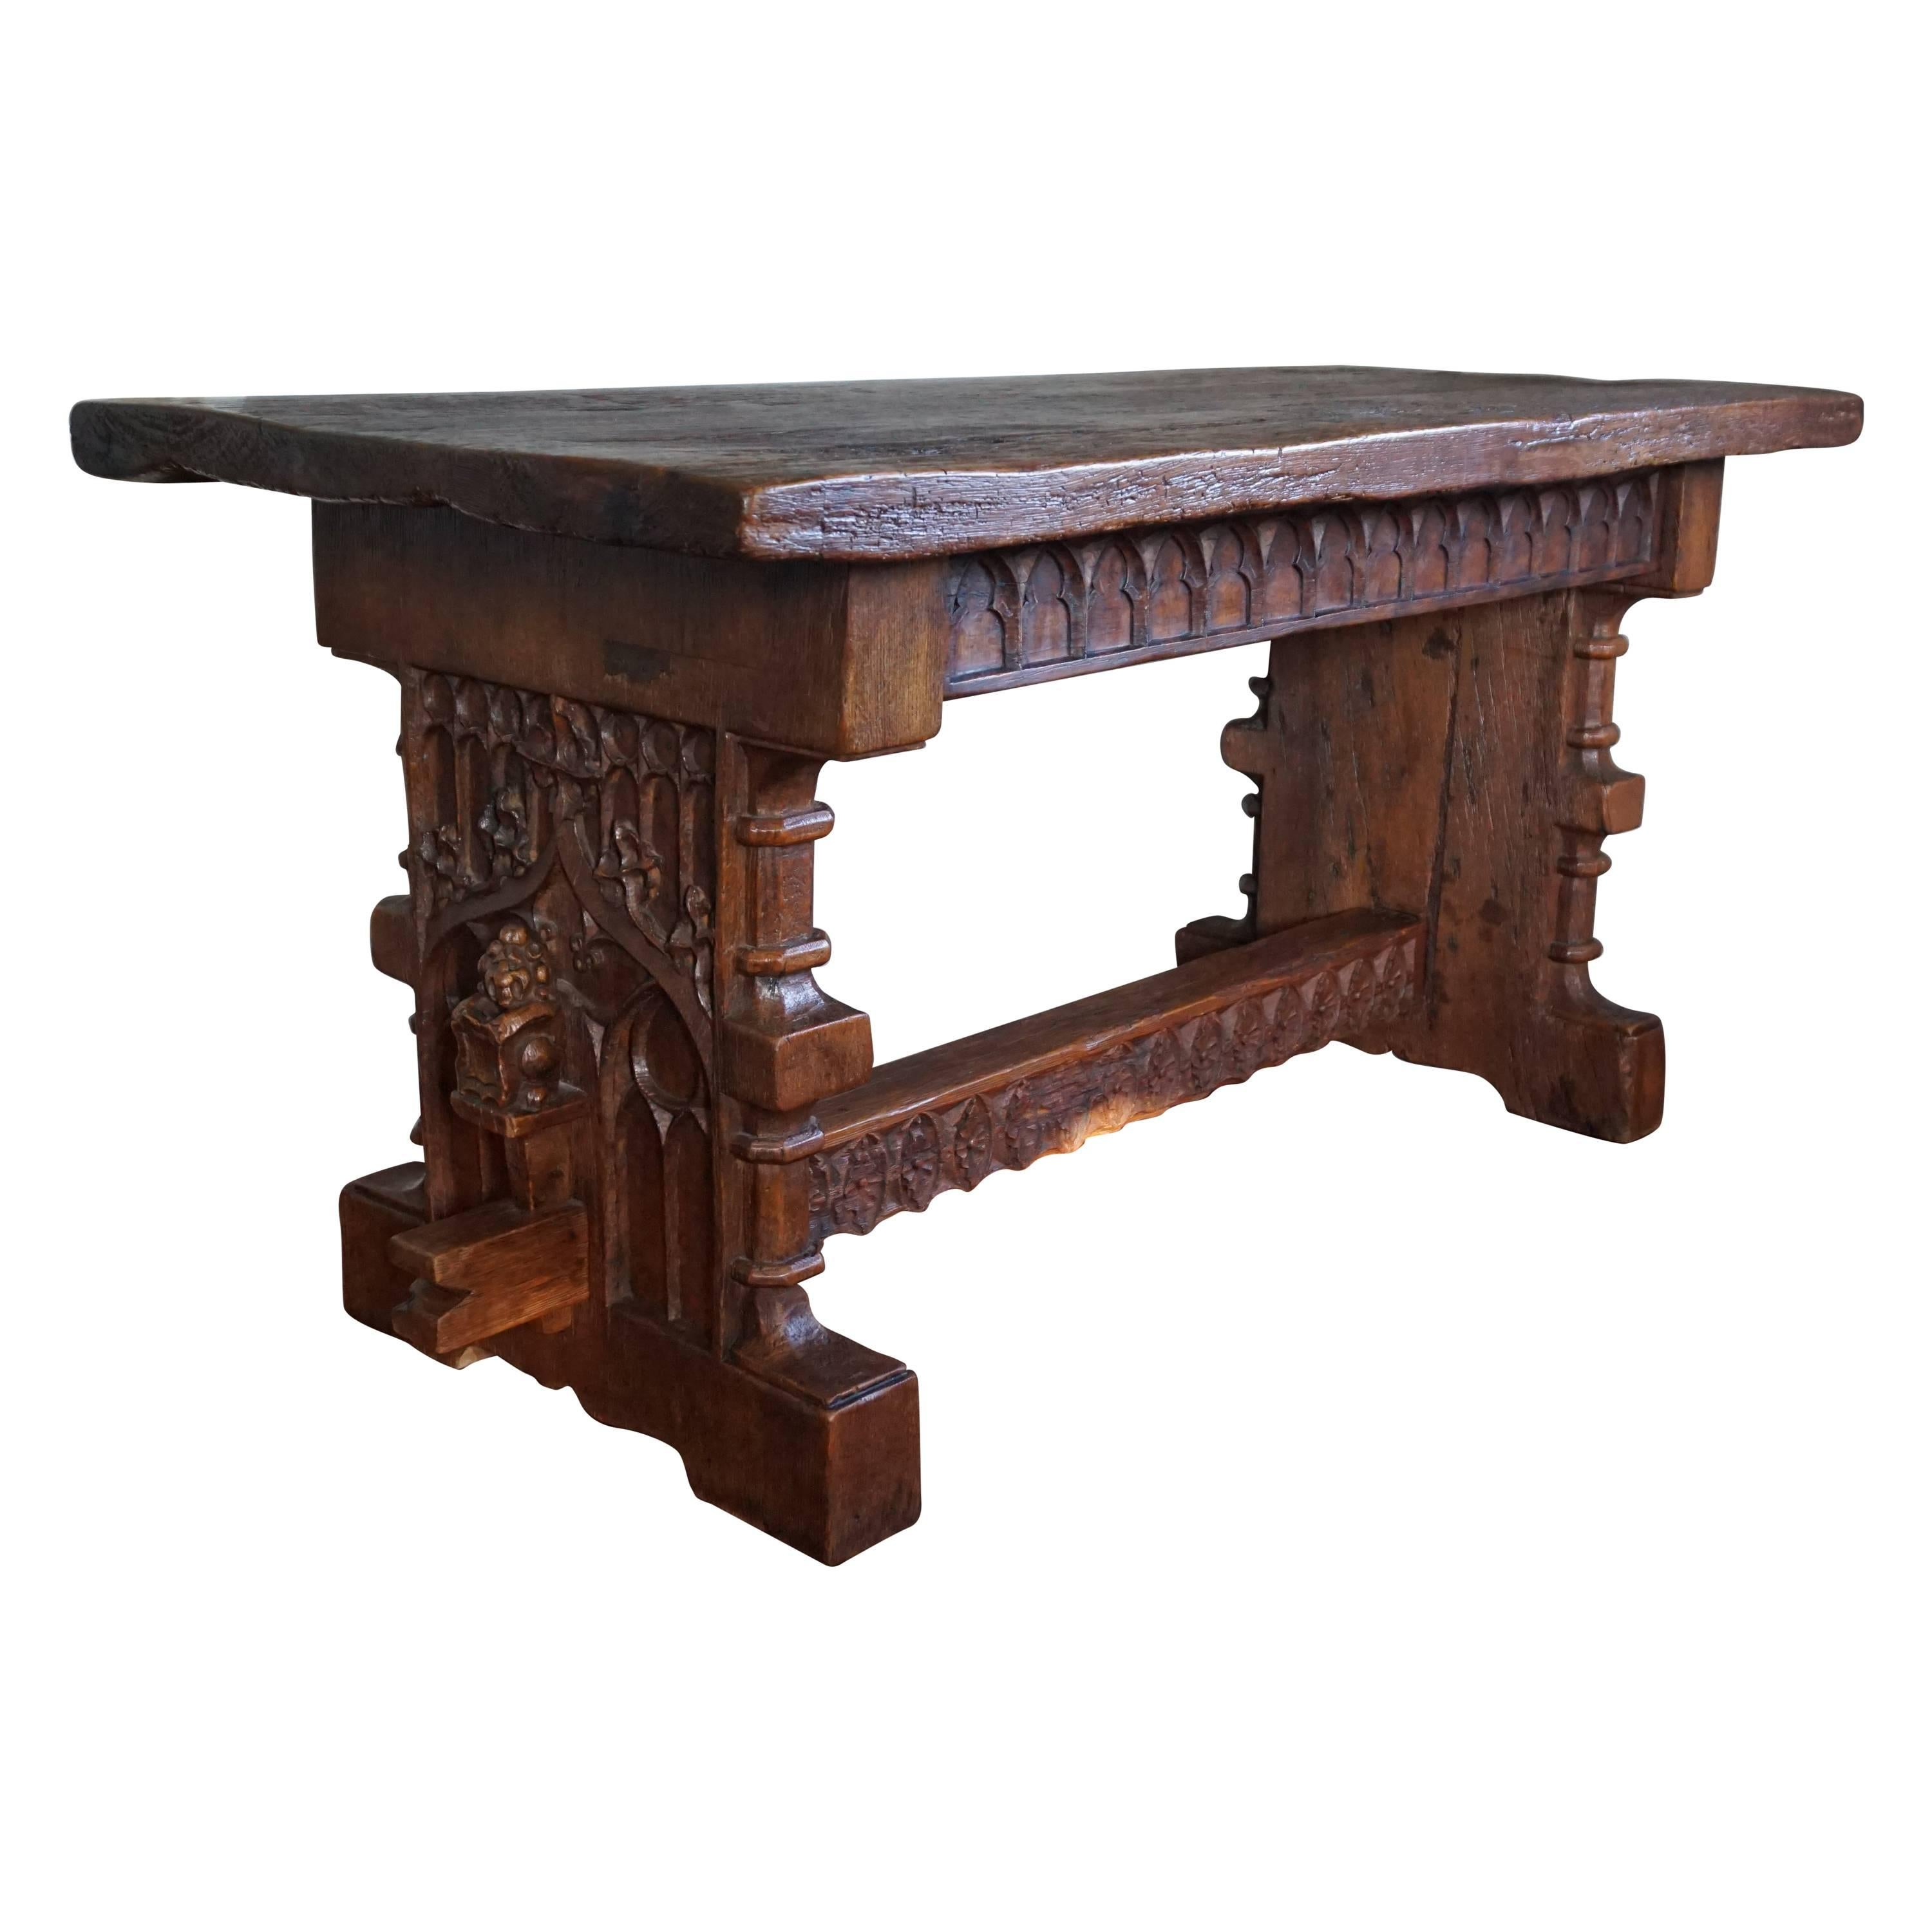 Antique Hand Carved Gothic Revival Refectory Table Or Side Table For Sale